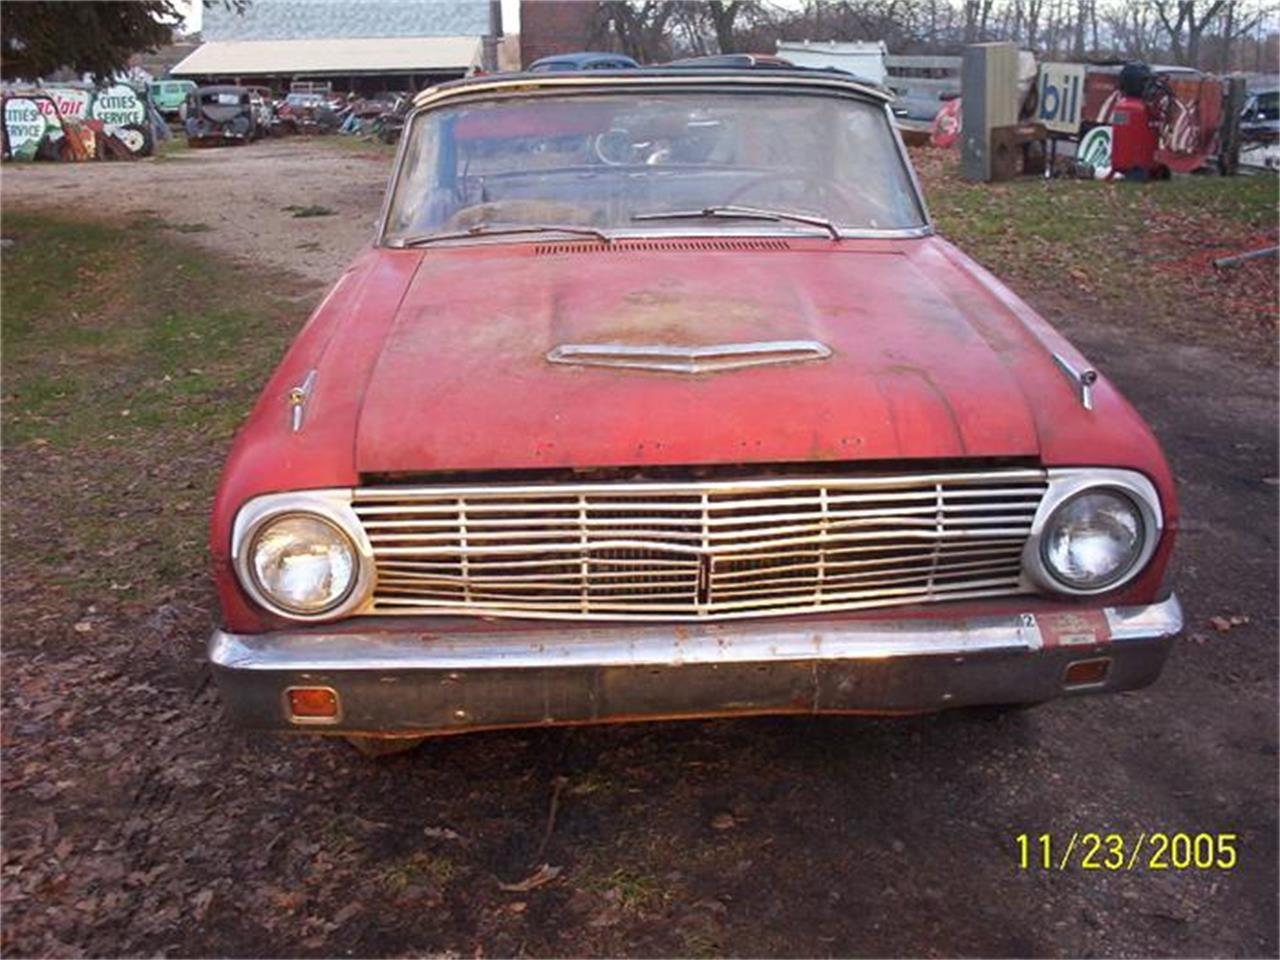 Large Picture of Classic '63 Falcon - $5,000.00 - 2L4D